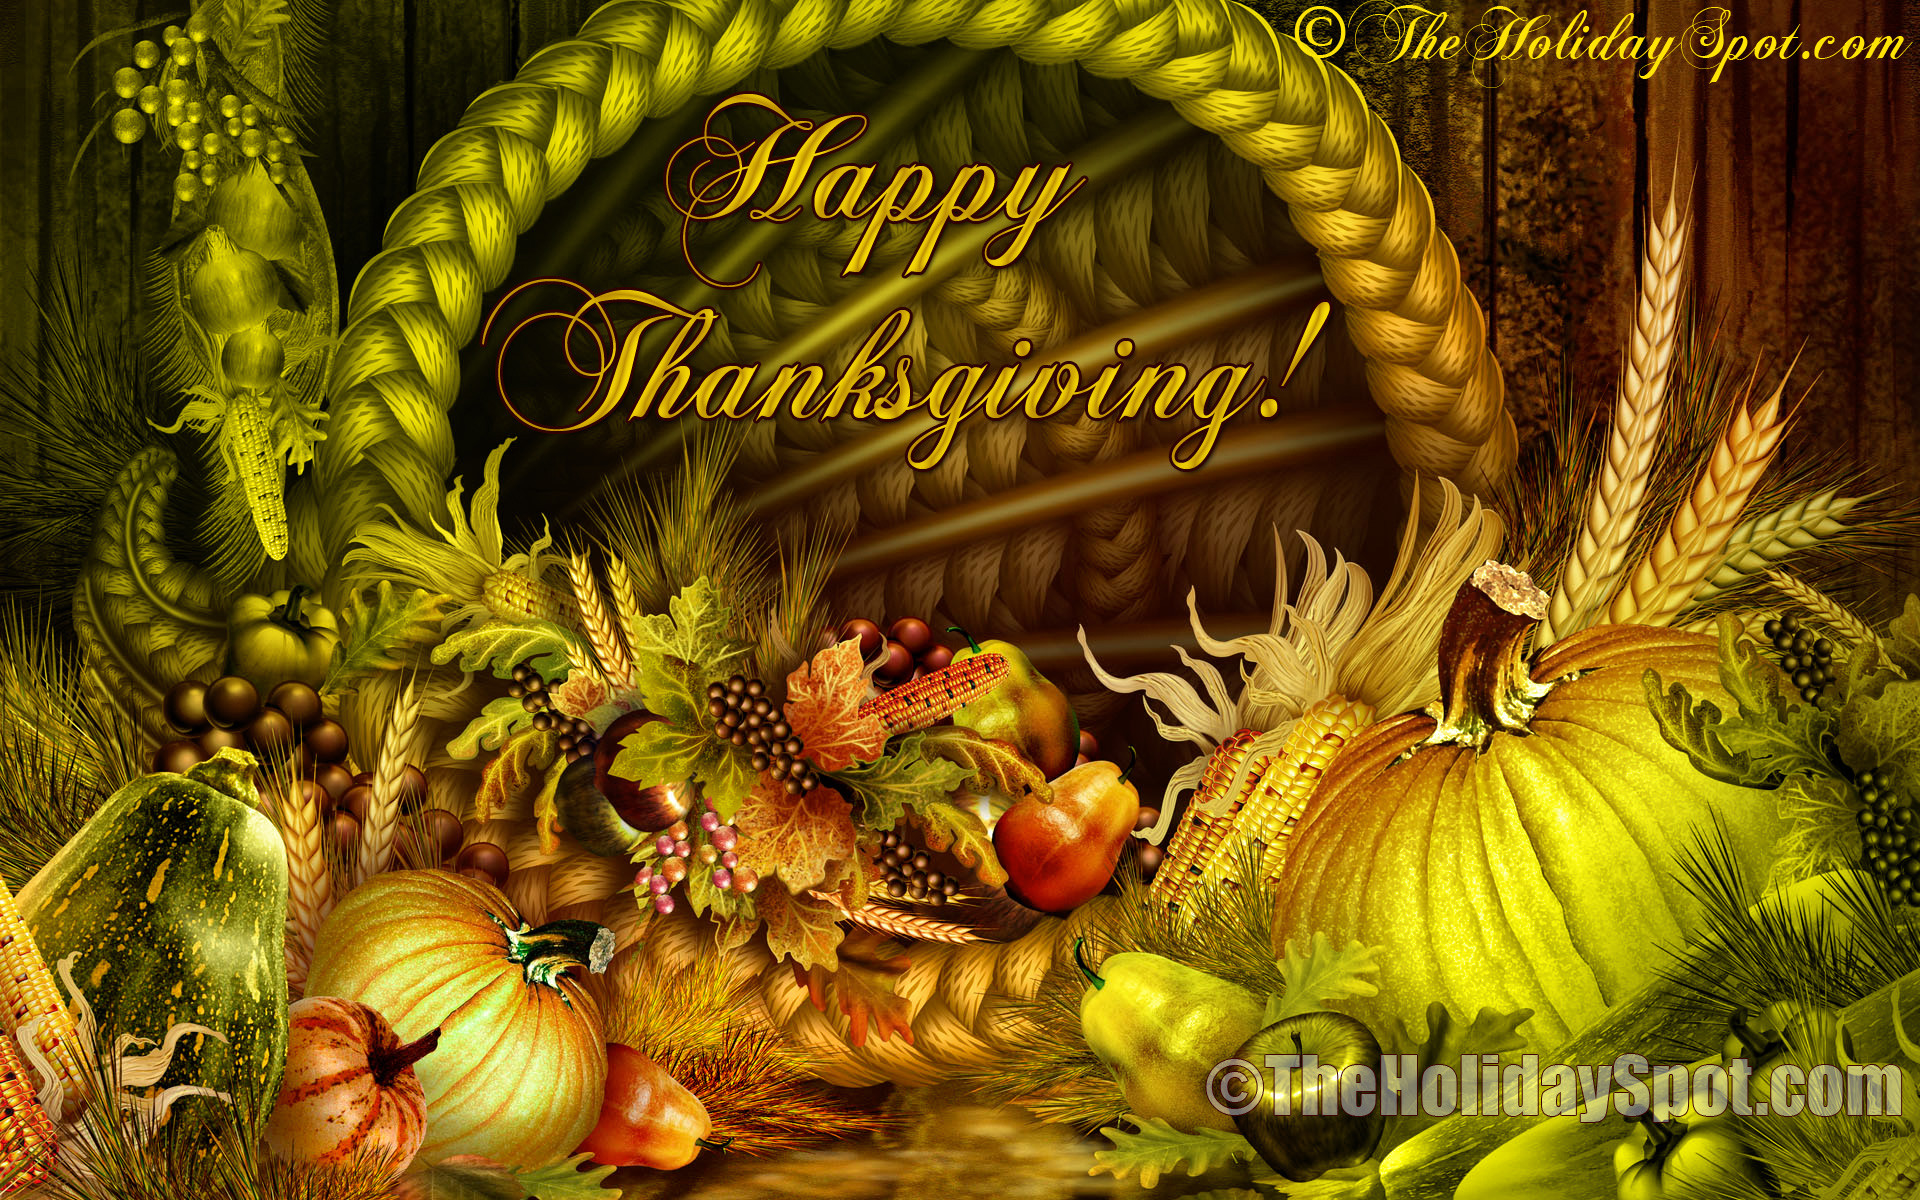 Thanksgiving Turkey Wallpaper  Download Free Desktop 2011 Thanksgiving Wallpaper